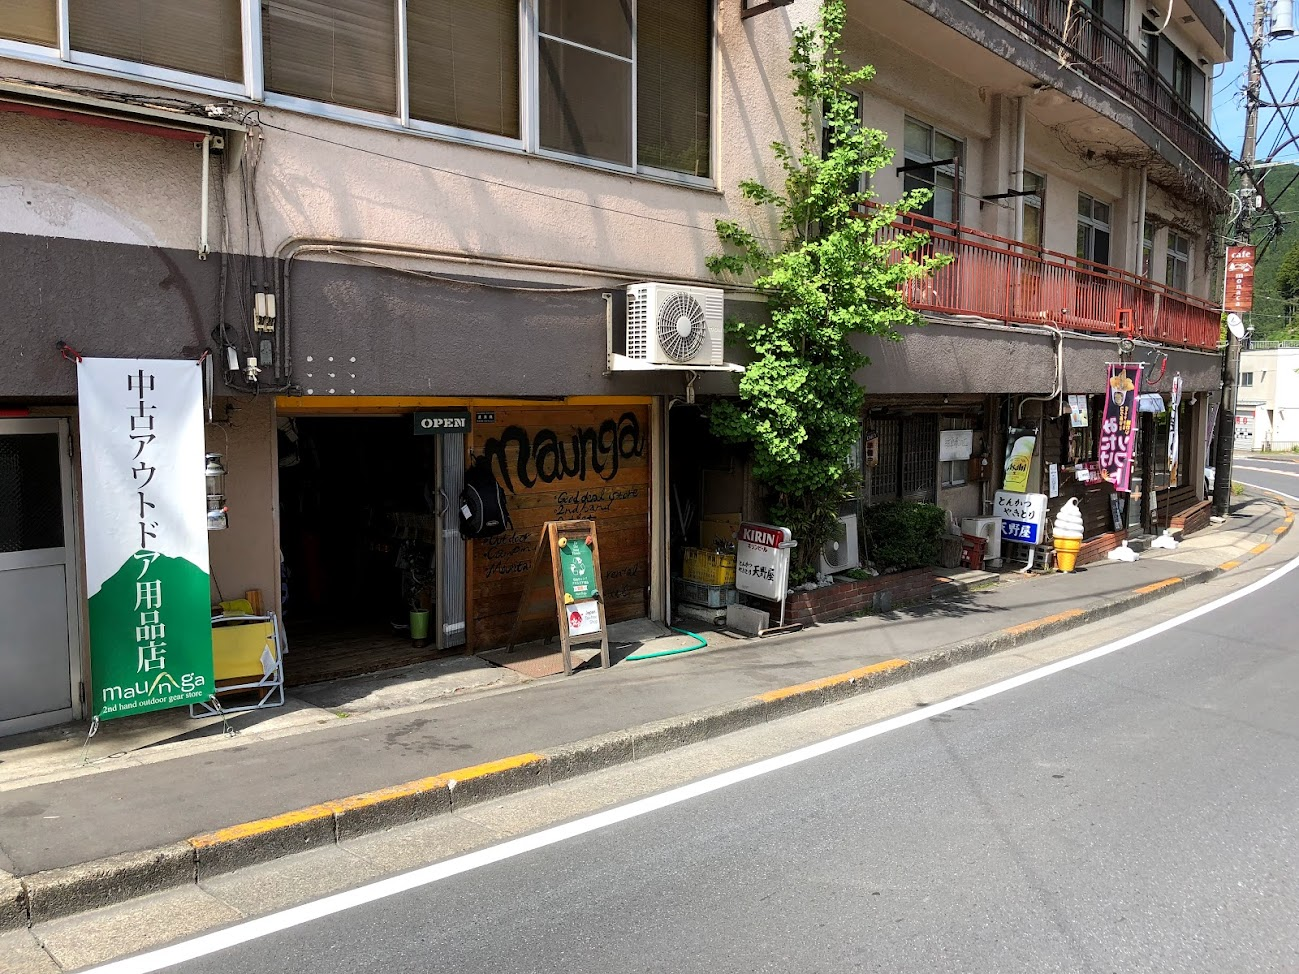 used outdoor goods stores, convenience stores, etc. along the street.